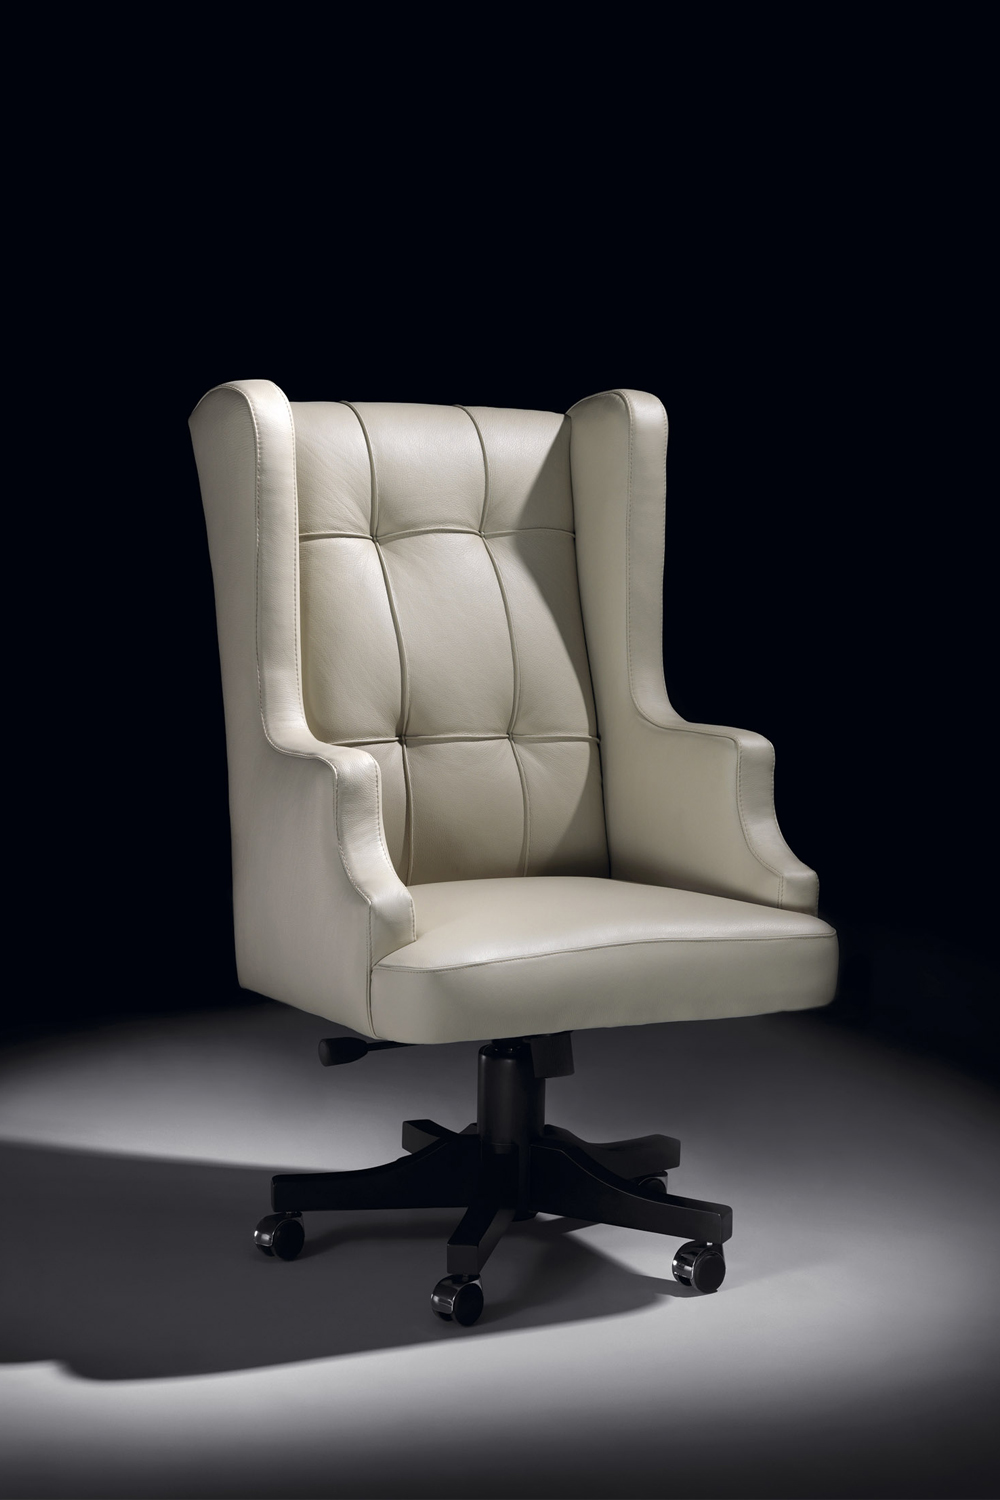 home office chairs uk, luxury office chair, leather office chair